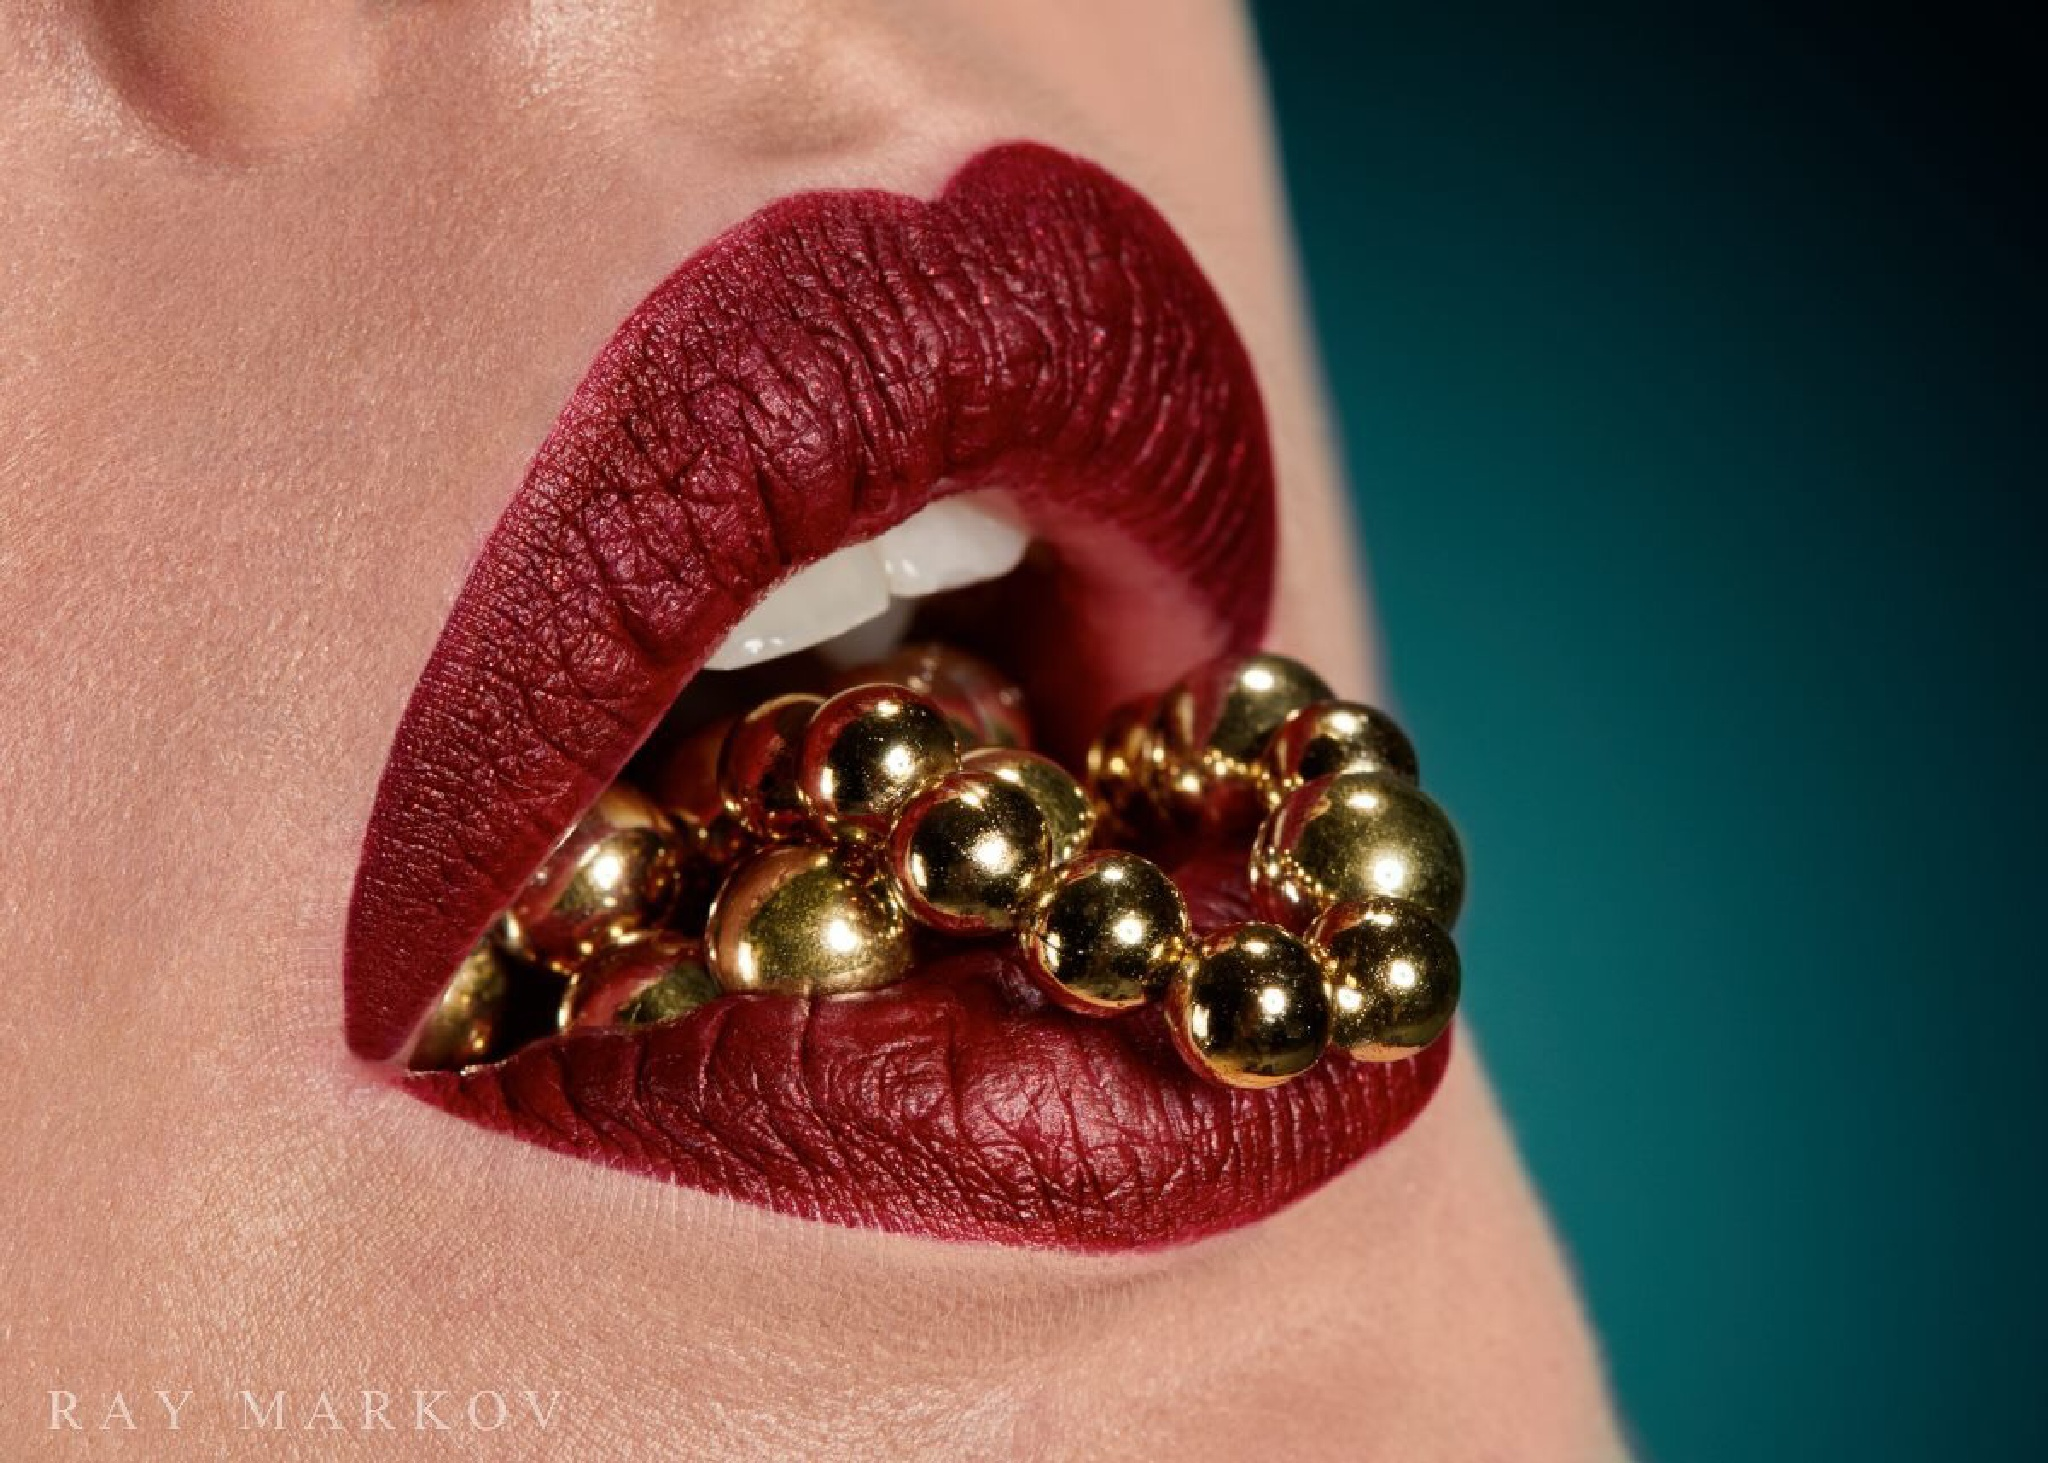 Red Lips by Simone Zbinden